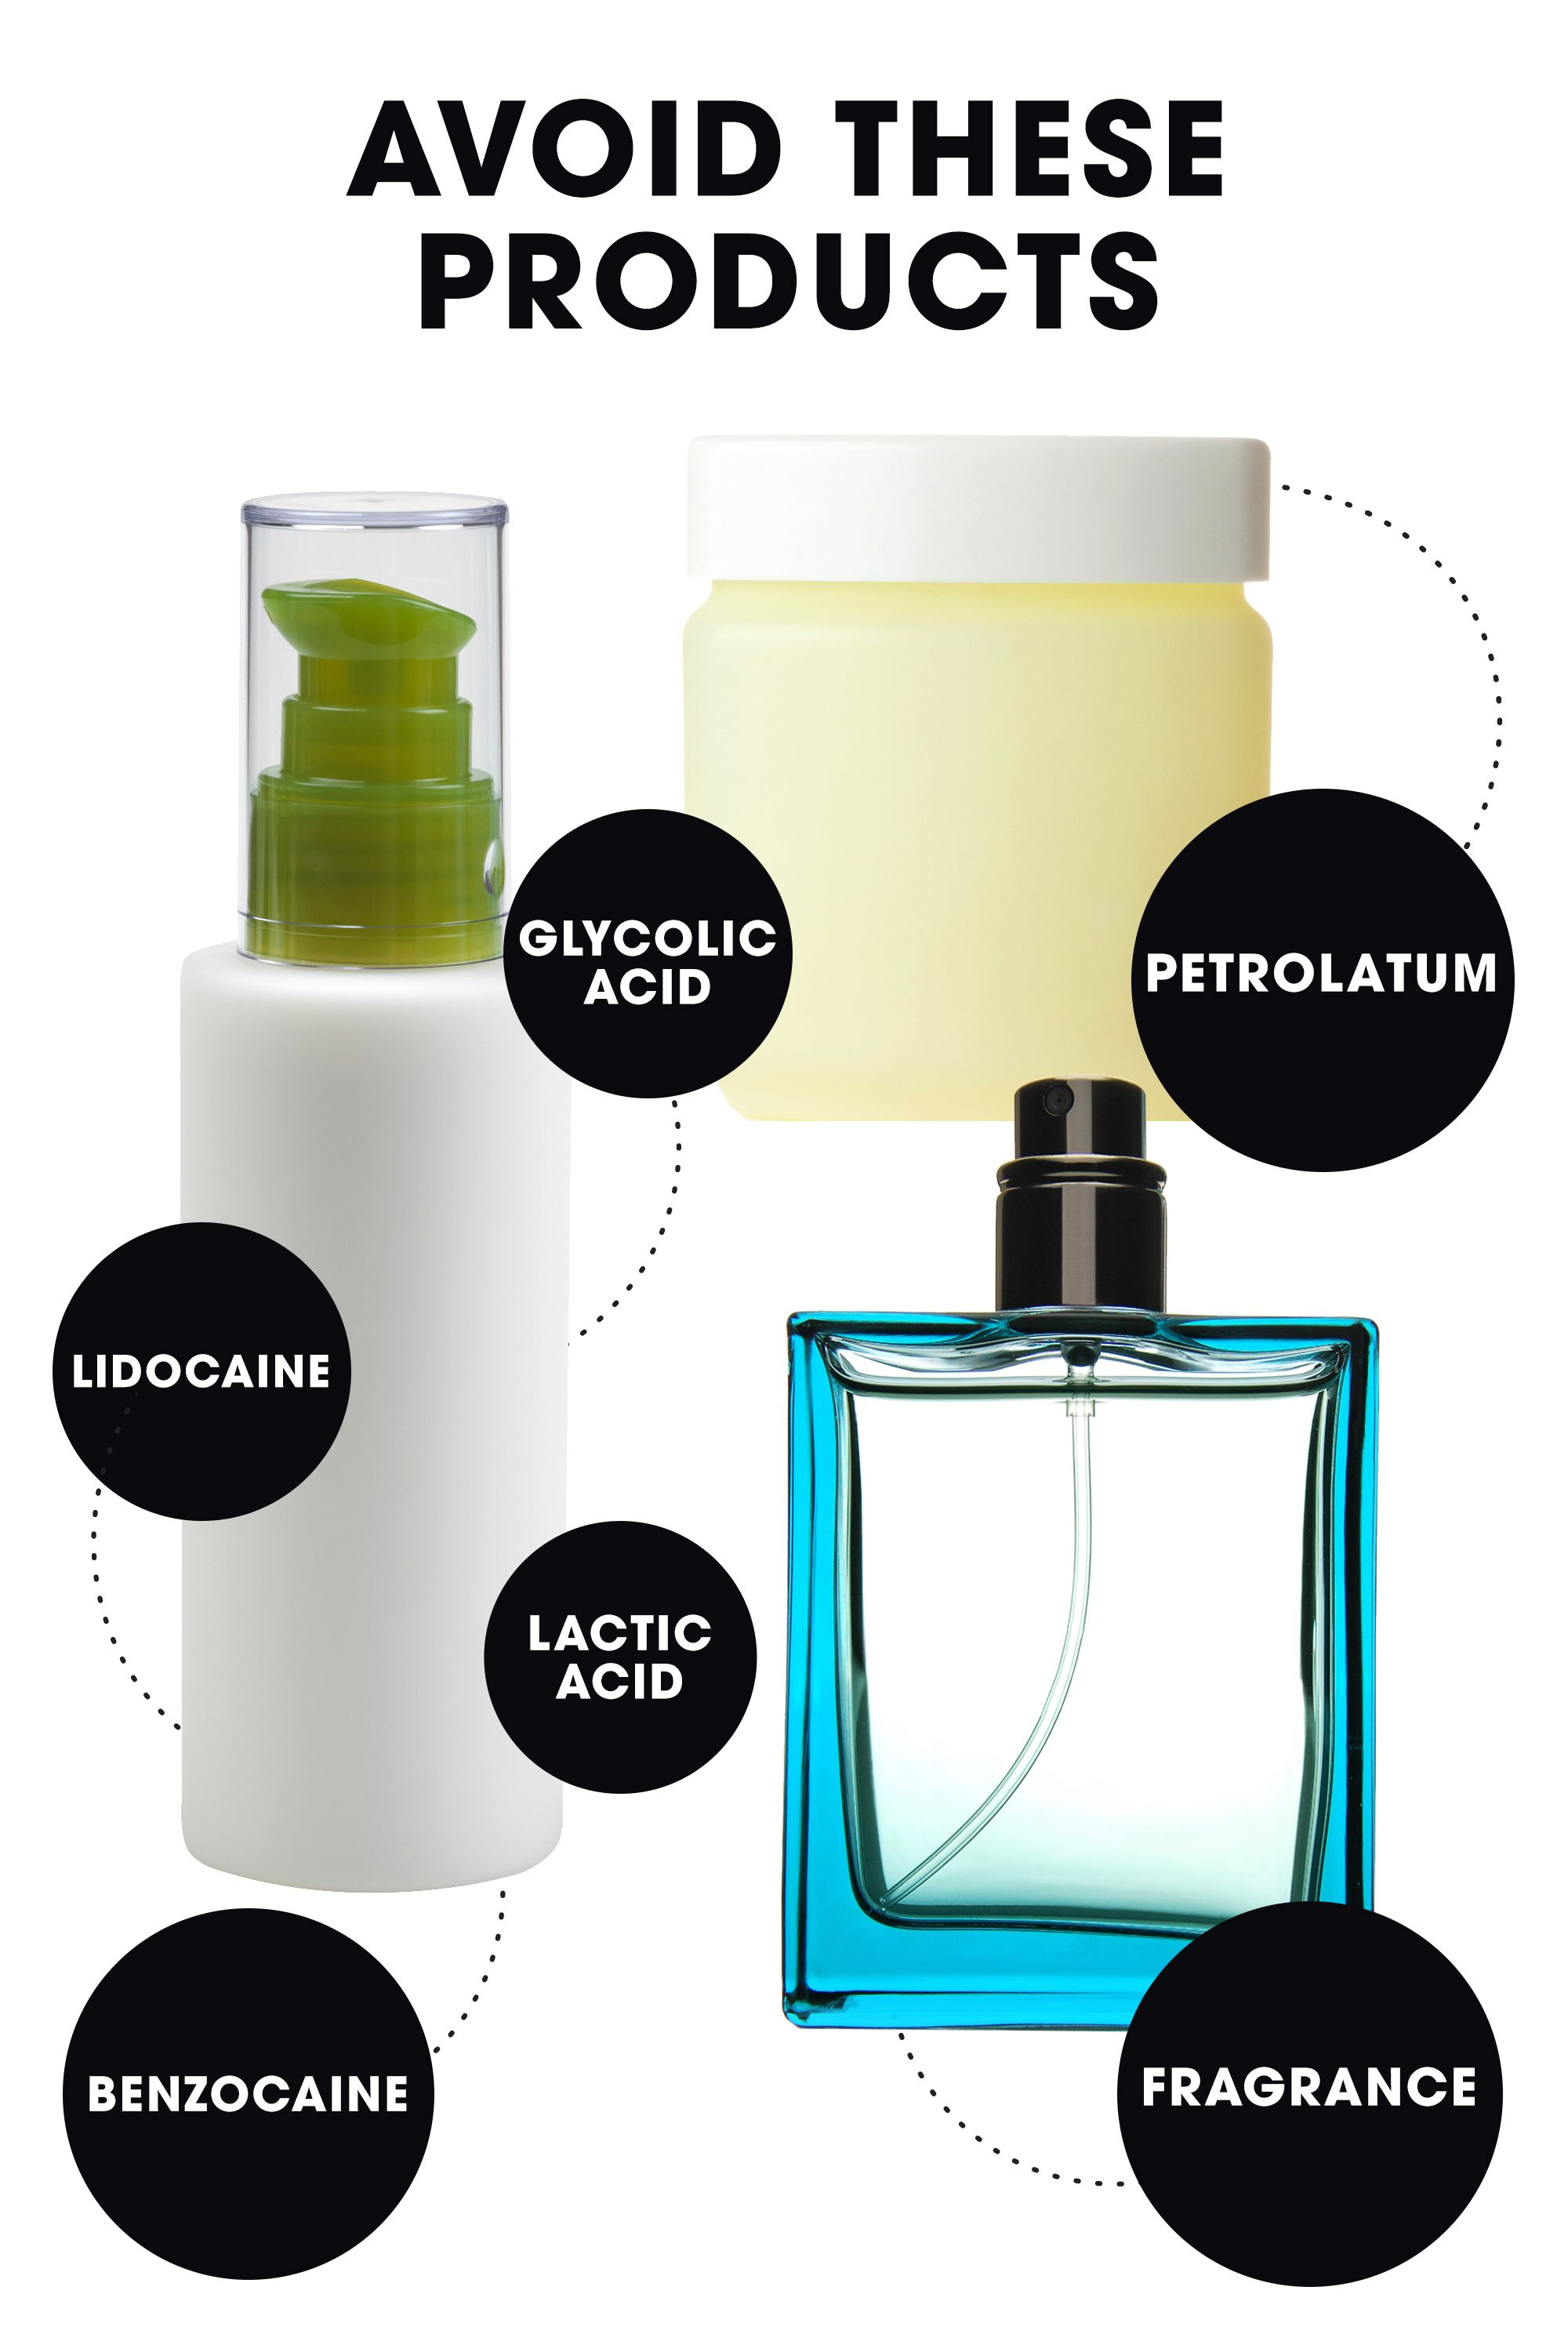 """""""The worst thing you can do for a sunburn is use any fragranced products on the area, or any products containing acids,""""says Jaliman, who notes that glycolic and lactic acids, which are frequently found in acne products, can irritate skin. And while benzocaine and lidocaine actually used to be primary ingredients in sunburn relieving products, most docs (including Jaliman) will now tell you to avoid these as well, since they can often cause further irritation and allergic reactions. Finally, while Vaseline might seem like an obvious skin-nourishing solution, it's not: """"Any product that contains petrolatum will trap the heat in your skin and will not allow it to breathe,"""" she warns."""